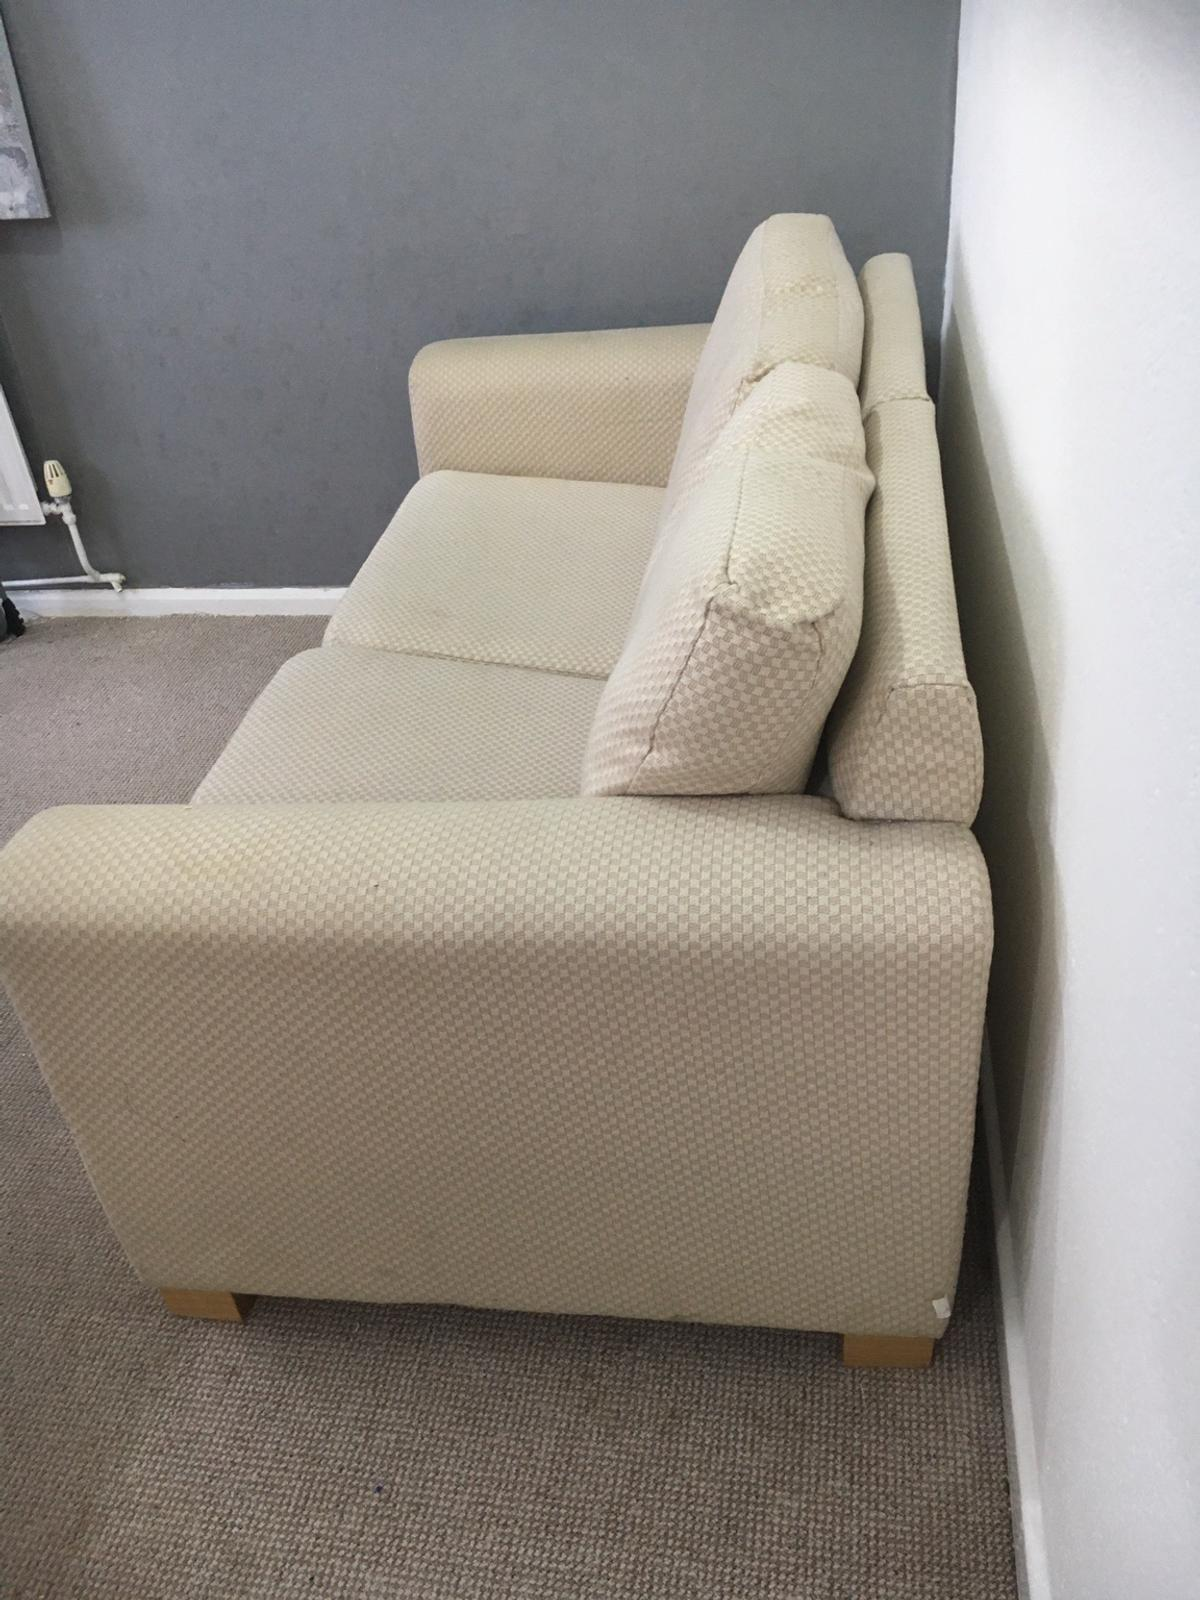 Double Cream Sofa Bed In M13 Manchester For £180.00 For